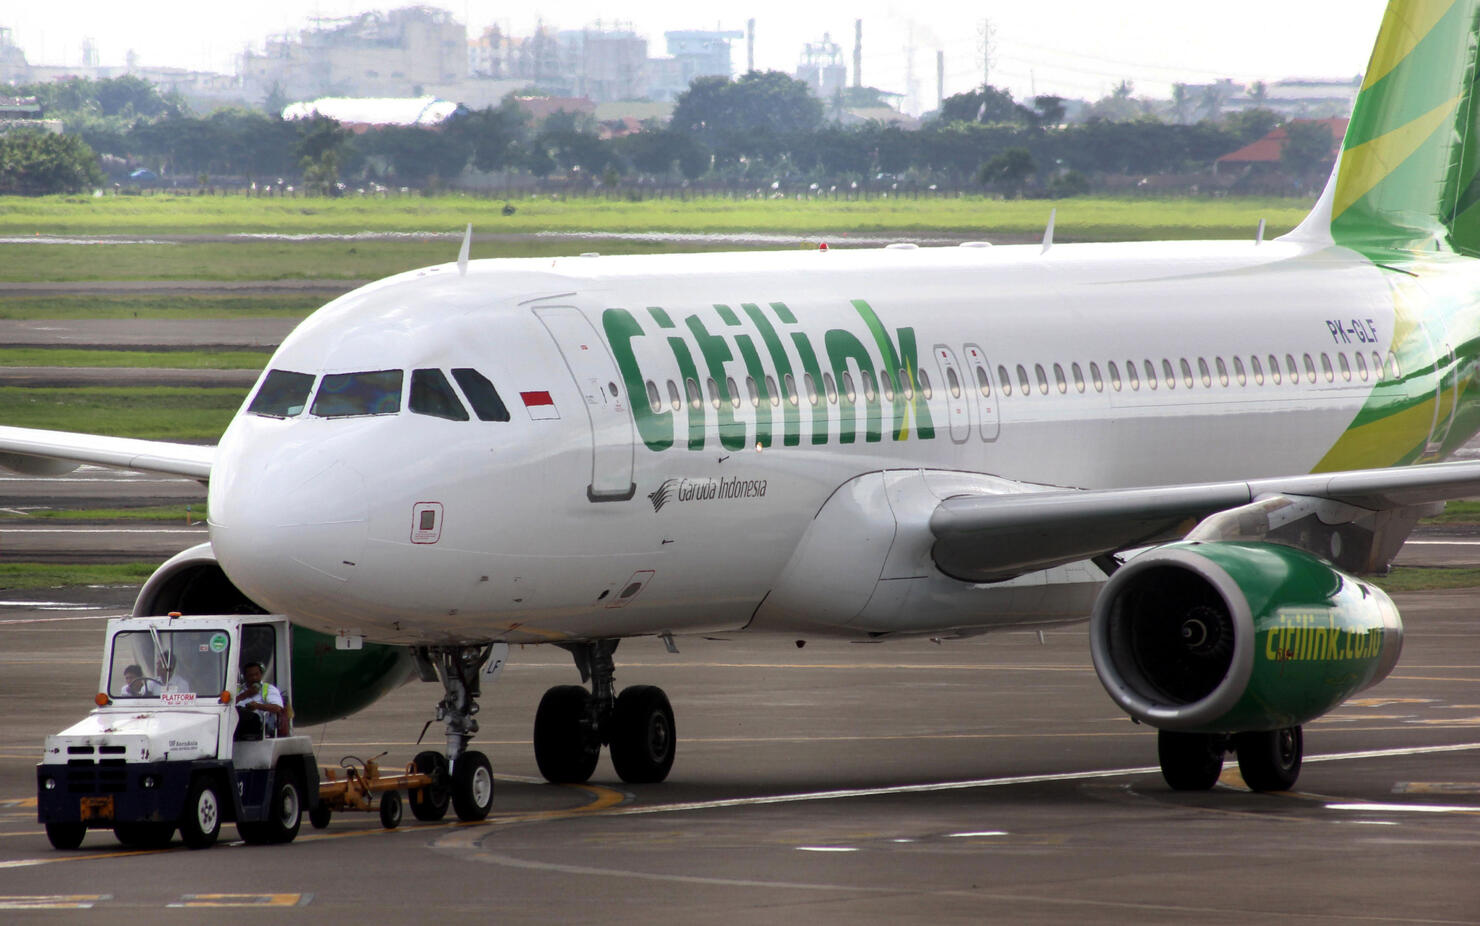 INDONESIA-FRANCE-ITALY-AIRLINE-ATR-CITILINK-CONTRACT